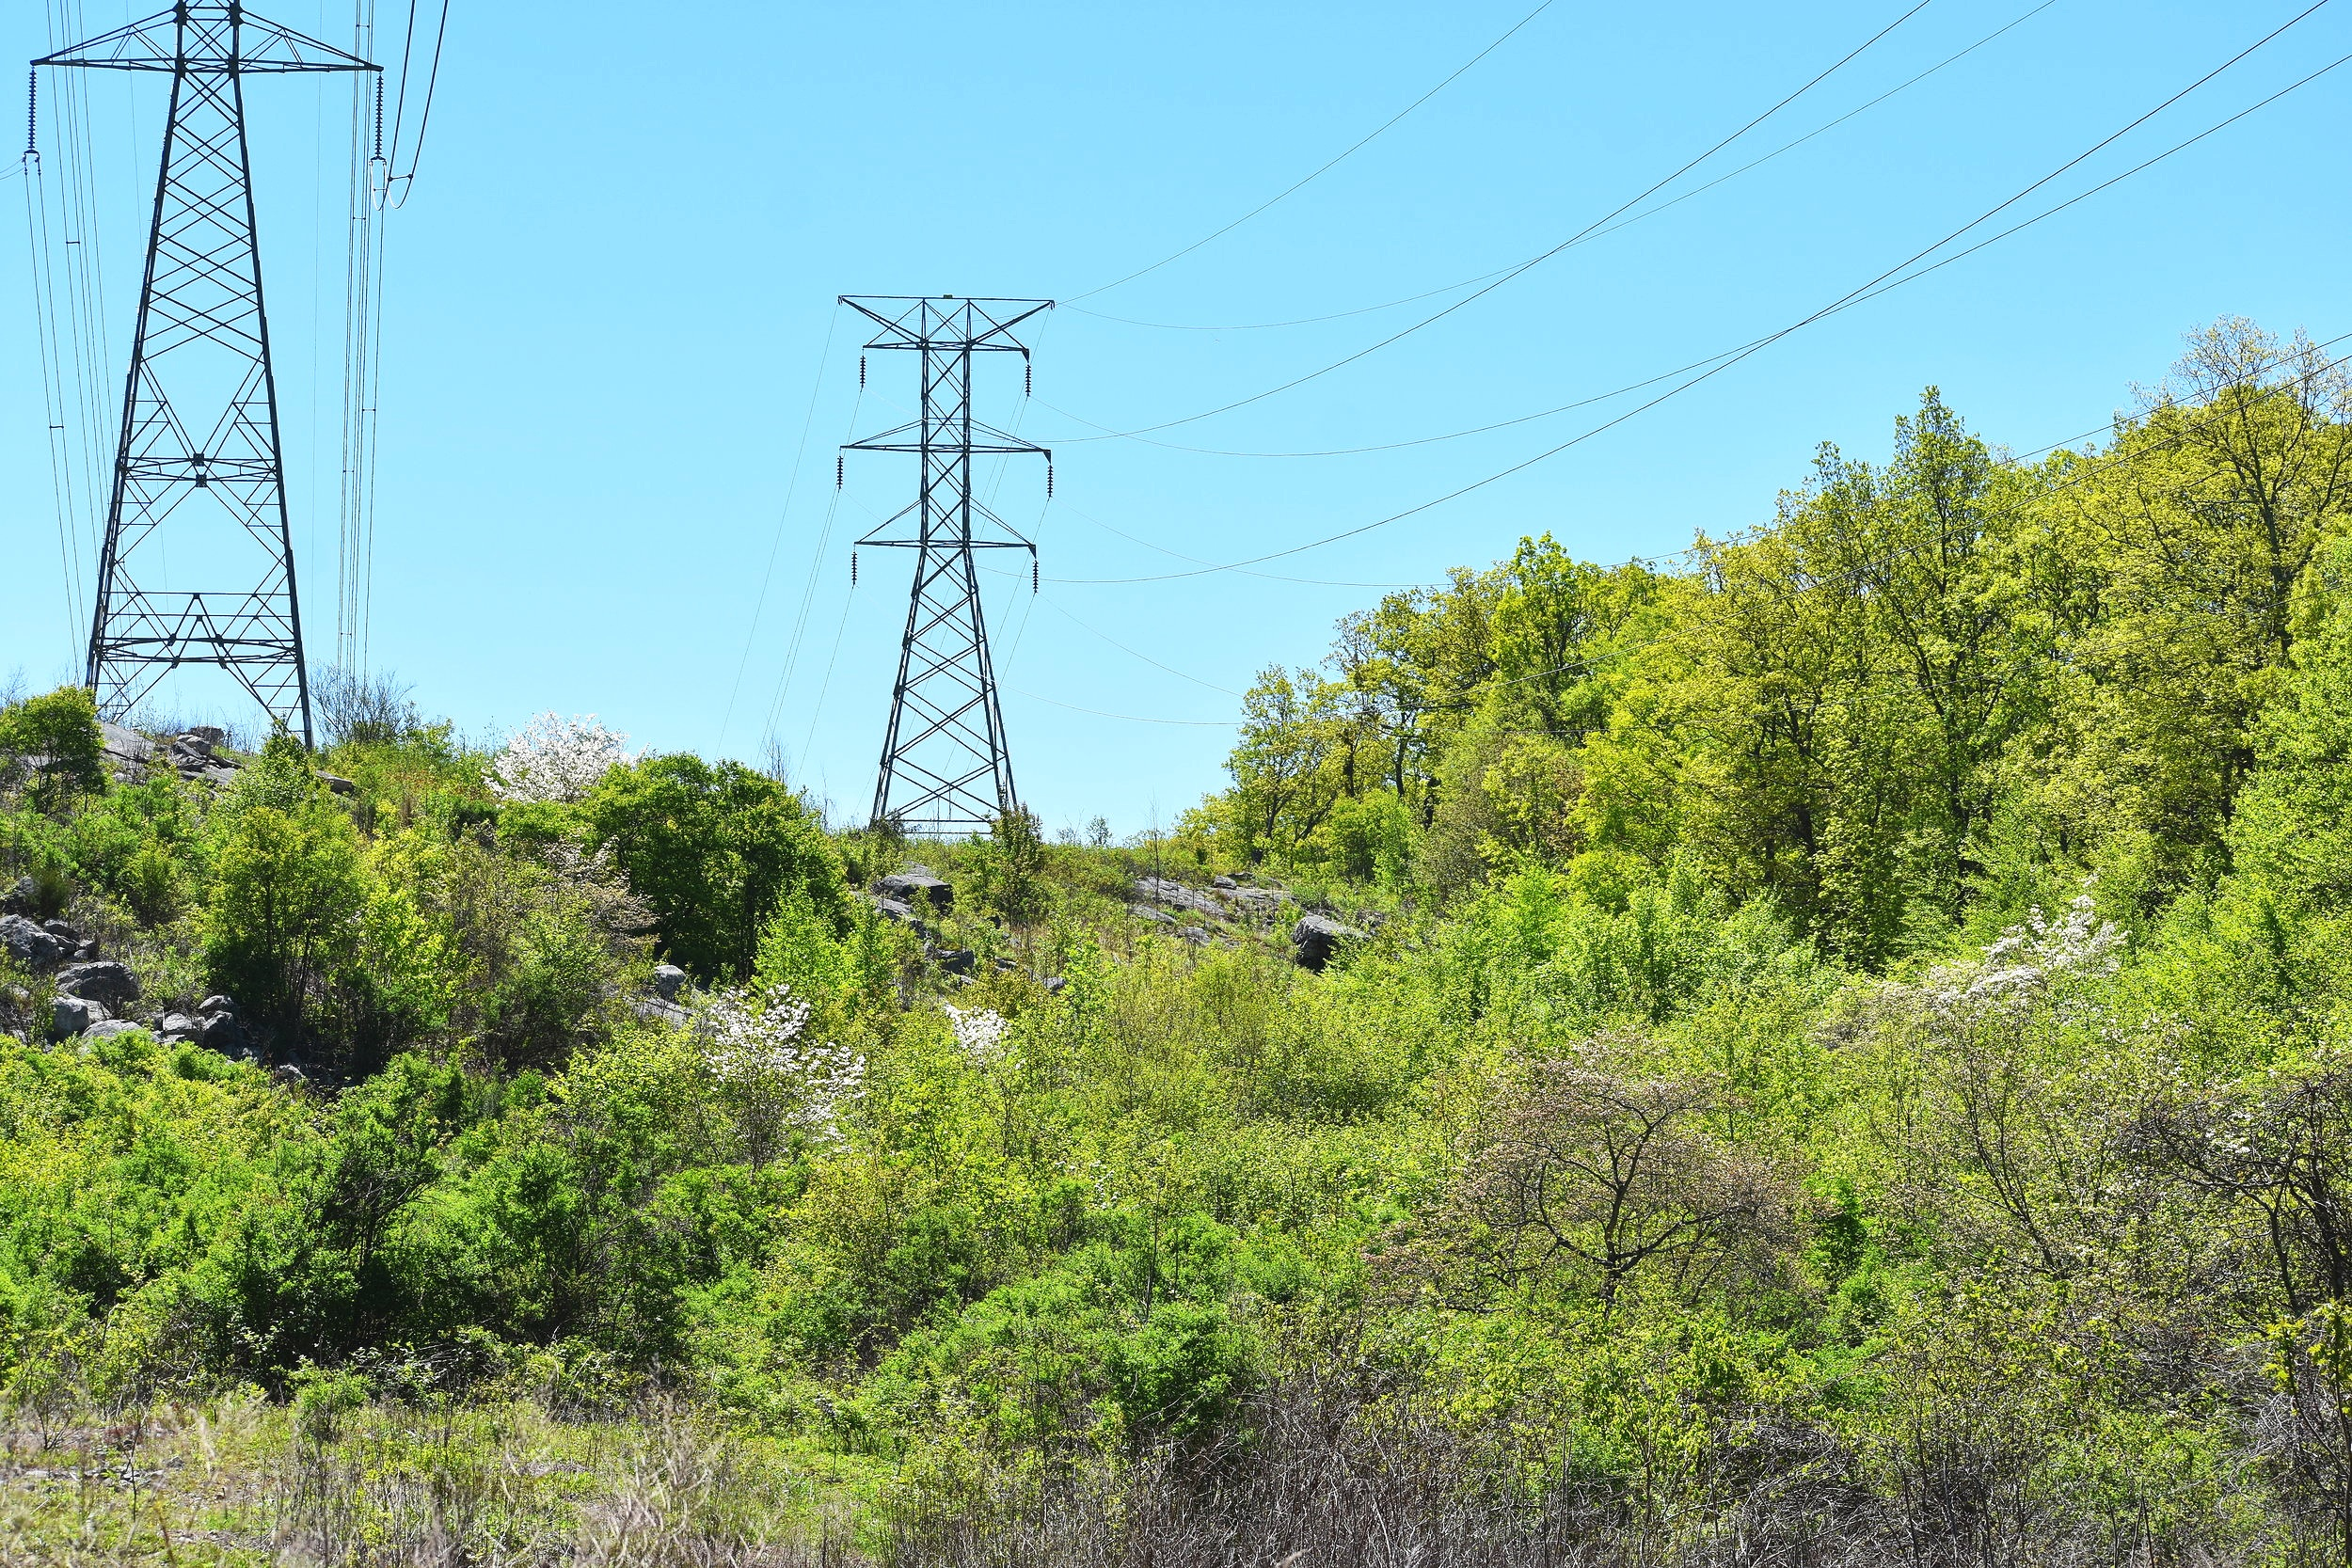 Golden Winged Warbler are most frequently found in shrubby, regenerating areas near forest - such as this powerline cut